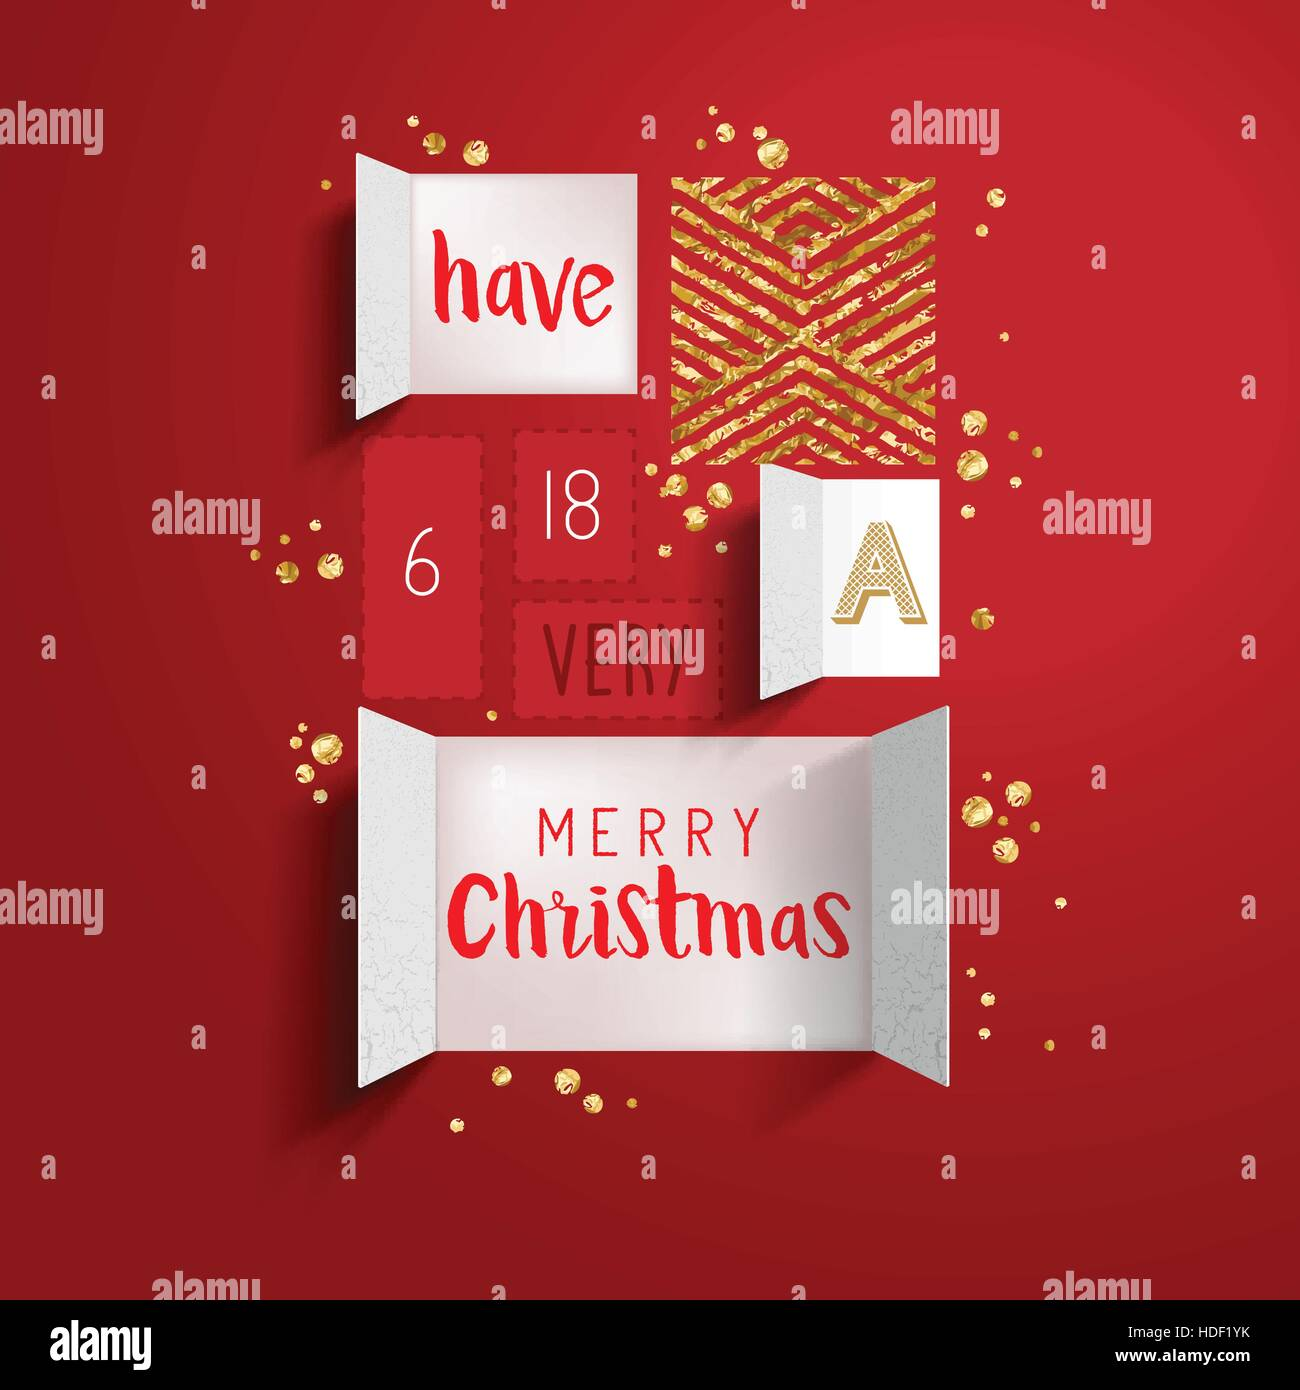 Christmas advent calendar doors open to reveal a festive message with gold details. Vector illustration - Stock Image